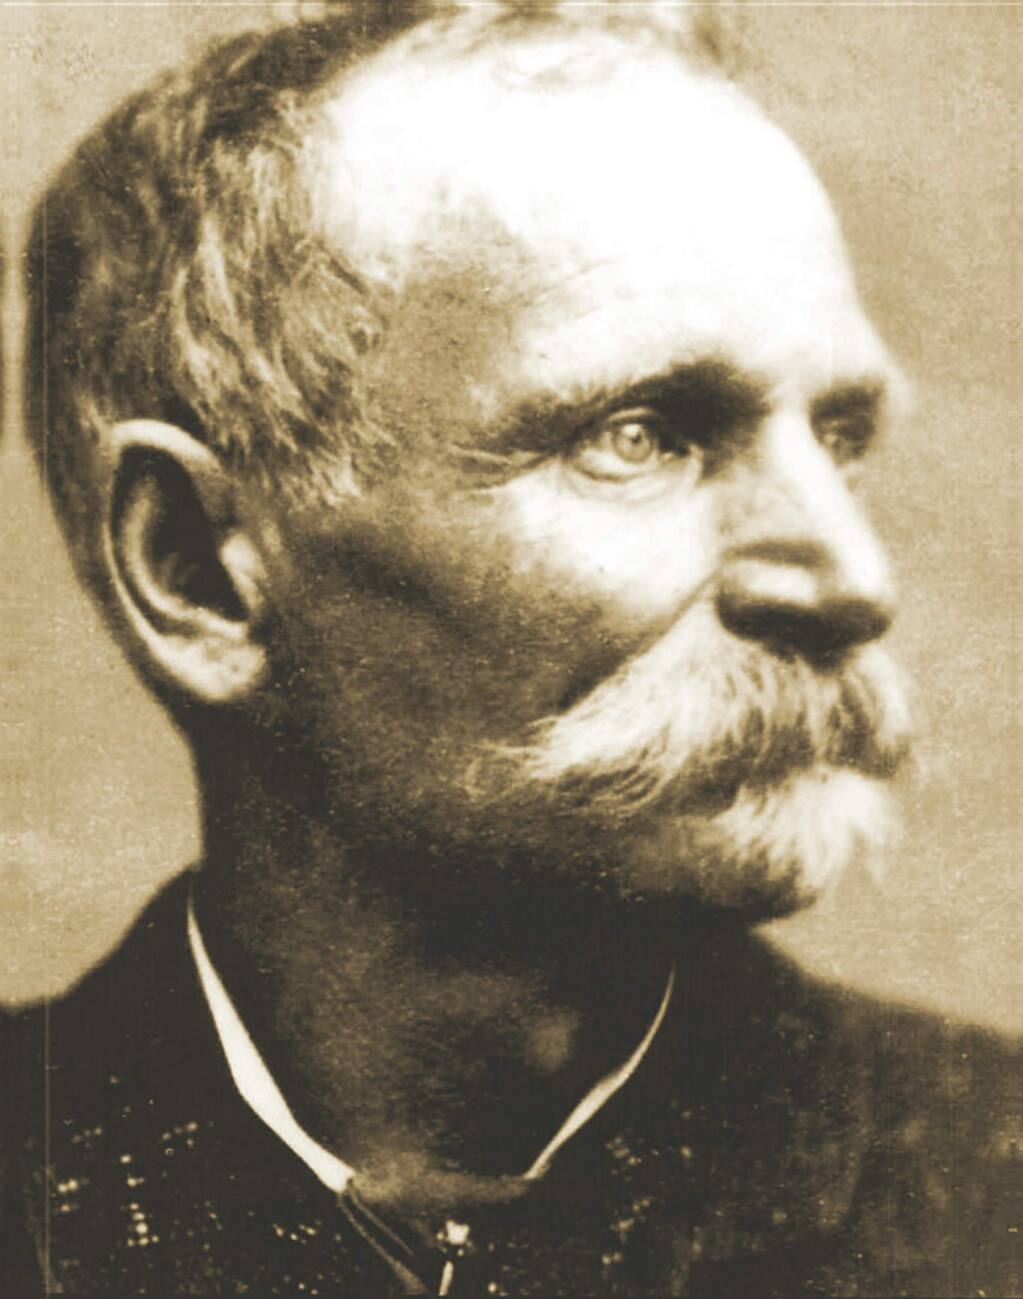 Charles E. Boles, 'Black Bart,' from the cover of the book, 'Black Bart: Boulevardier Bandit: The Saga of California's Most Mysterious Stagecoach Robber and the Men Who Sought to Capture Him.'